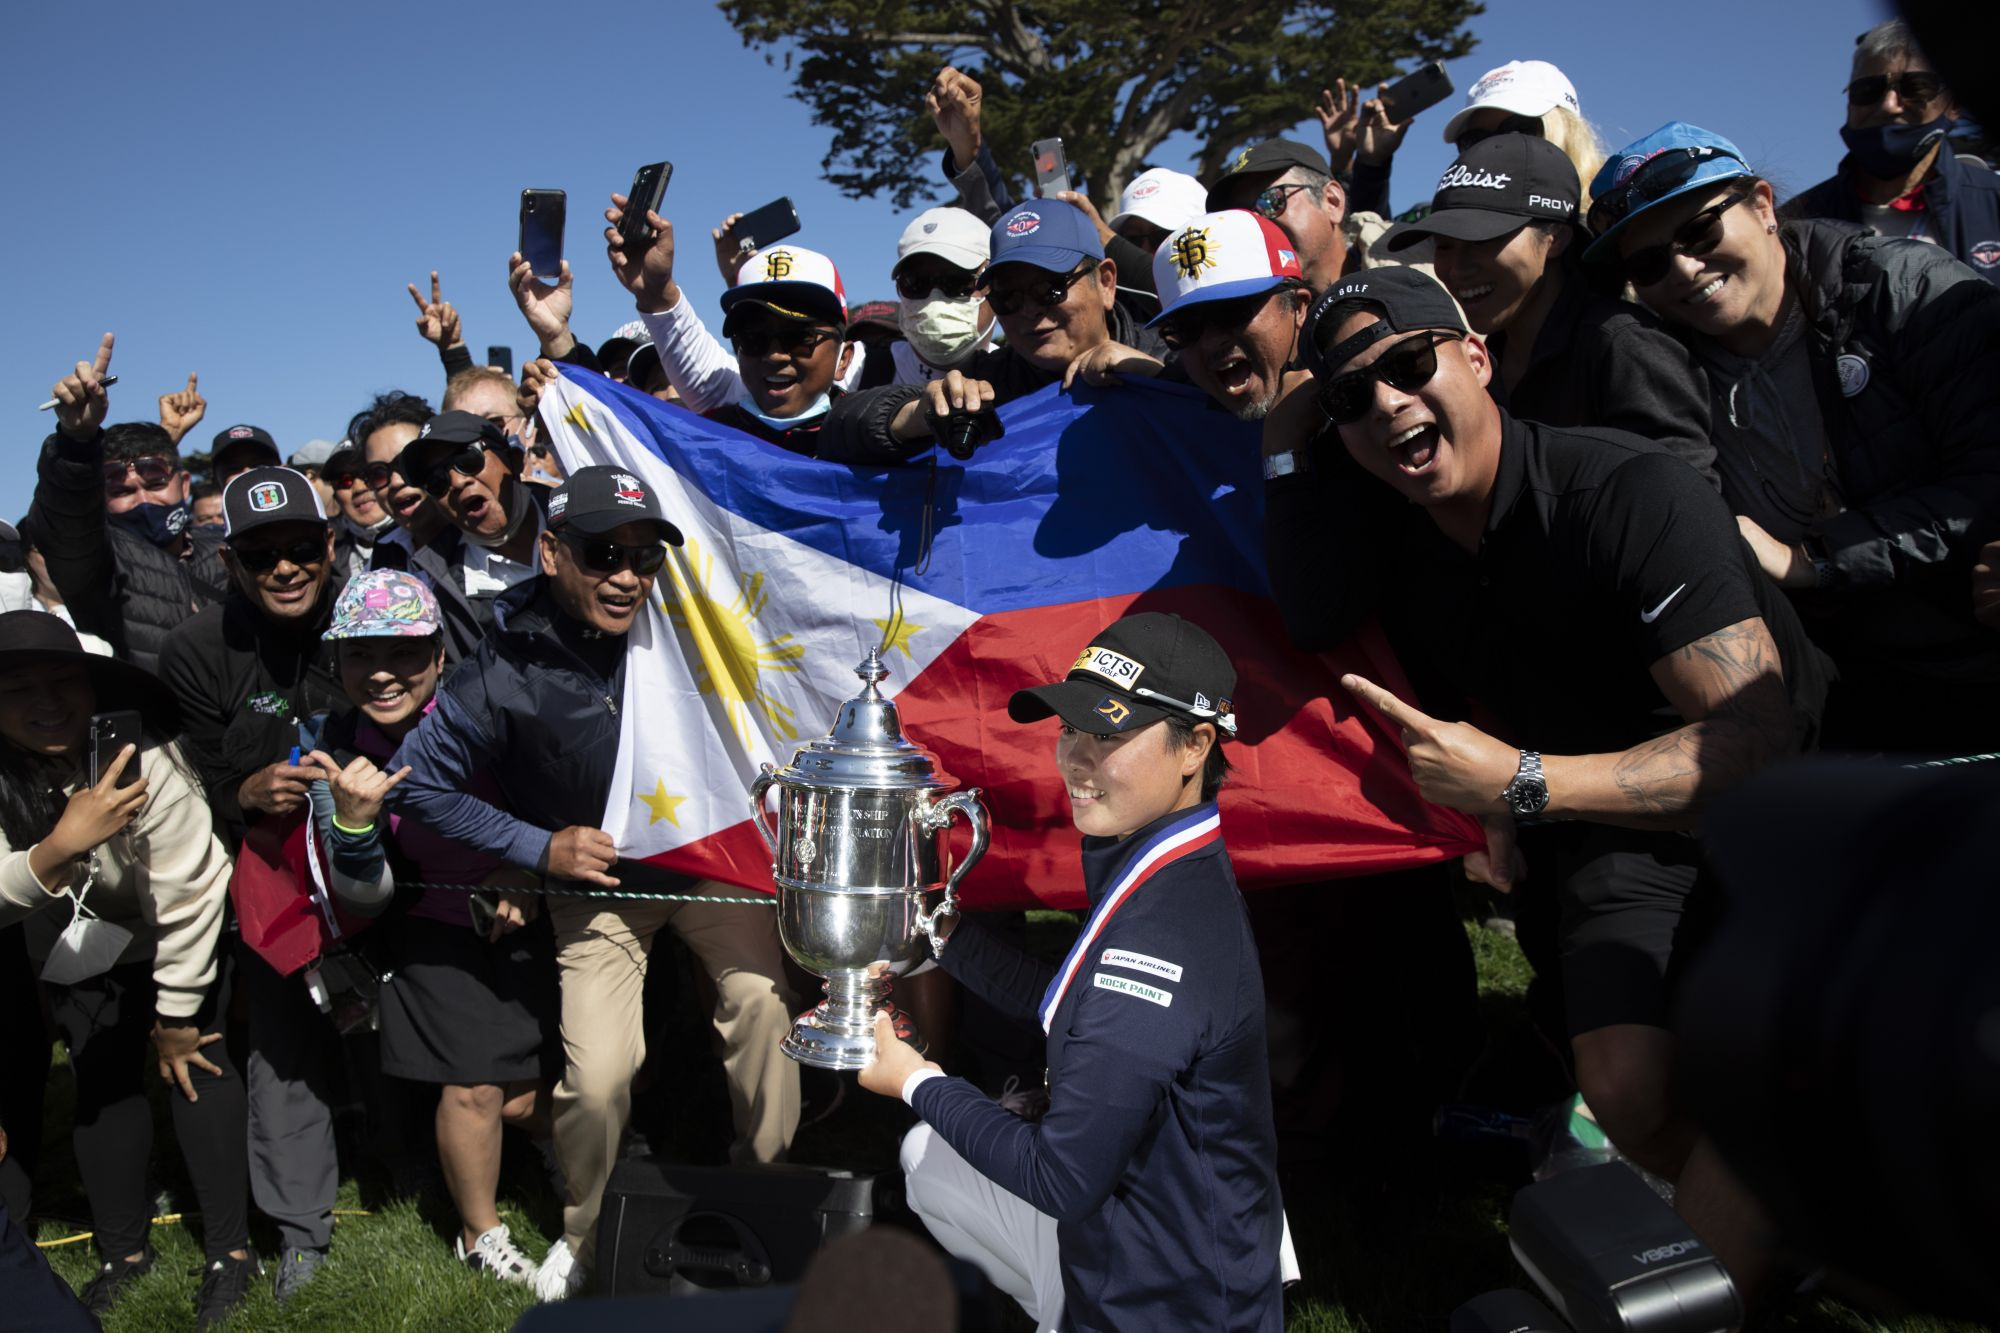 SAN FRANCISCO, CA - JUNE 06: Yuka Saso of the Philippines celebrates with the Harton S. Semple Trophy after winning the 76th U.S. Women's Open Championship held on the Lake Course at the Olympic Club in San Francisco, Calif. on Sunday, June 6, 2021. (Santiago Mejia/The San Francisco Chronicle via Getty Images) Saso won following a three-hole playoff against Nasa Hataoka of Japan.